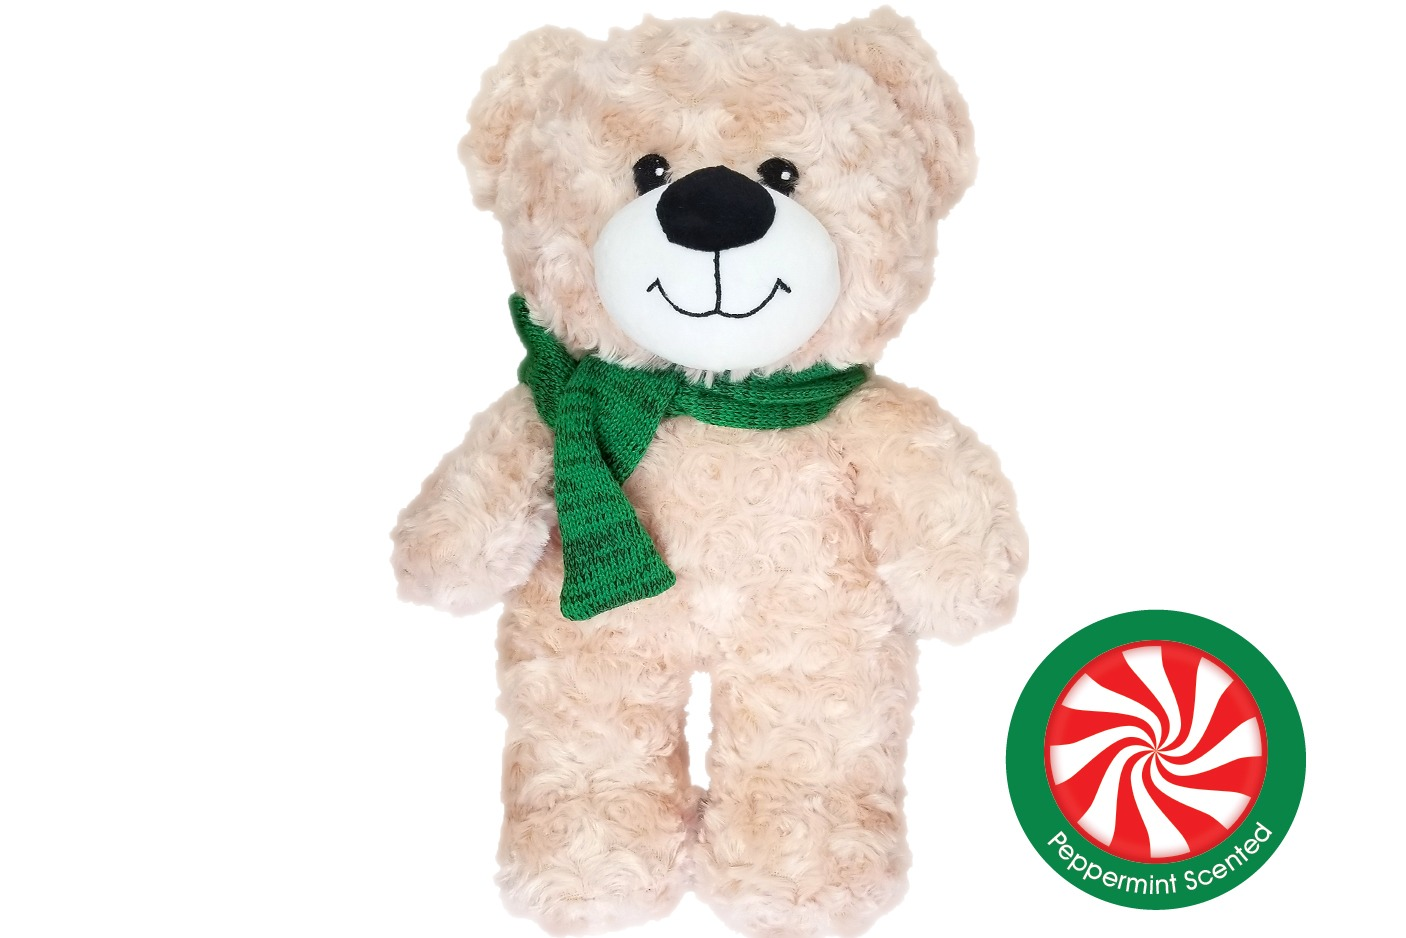 Peppermint Scented Plush Bear